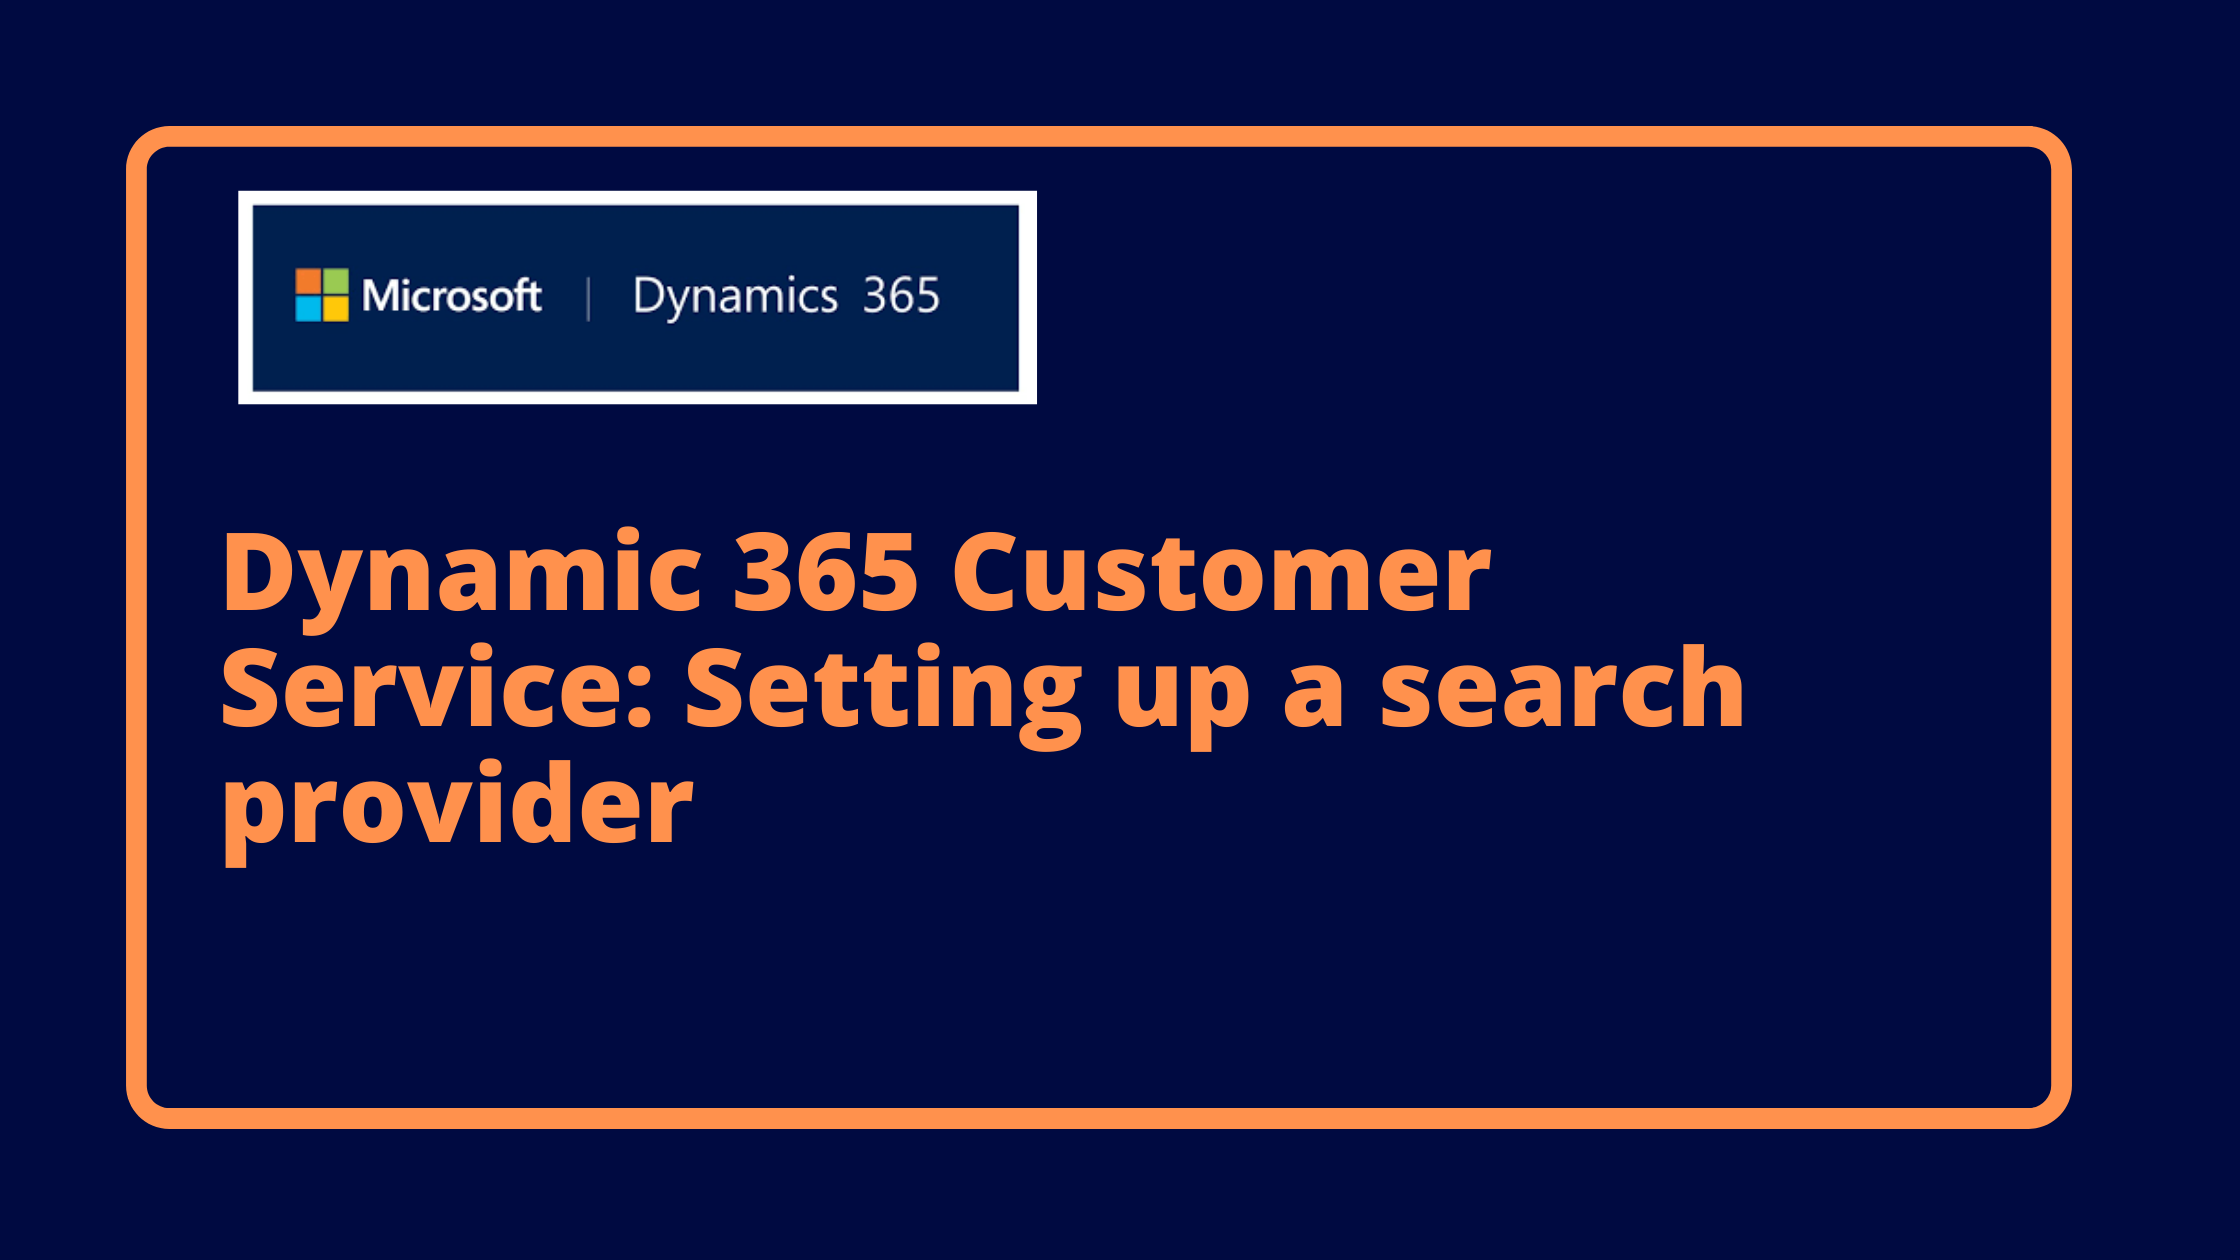 Dynamic 365 Customer Service: Setting up a search provider